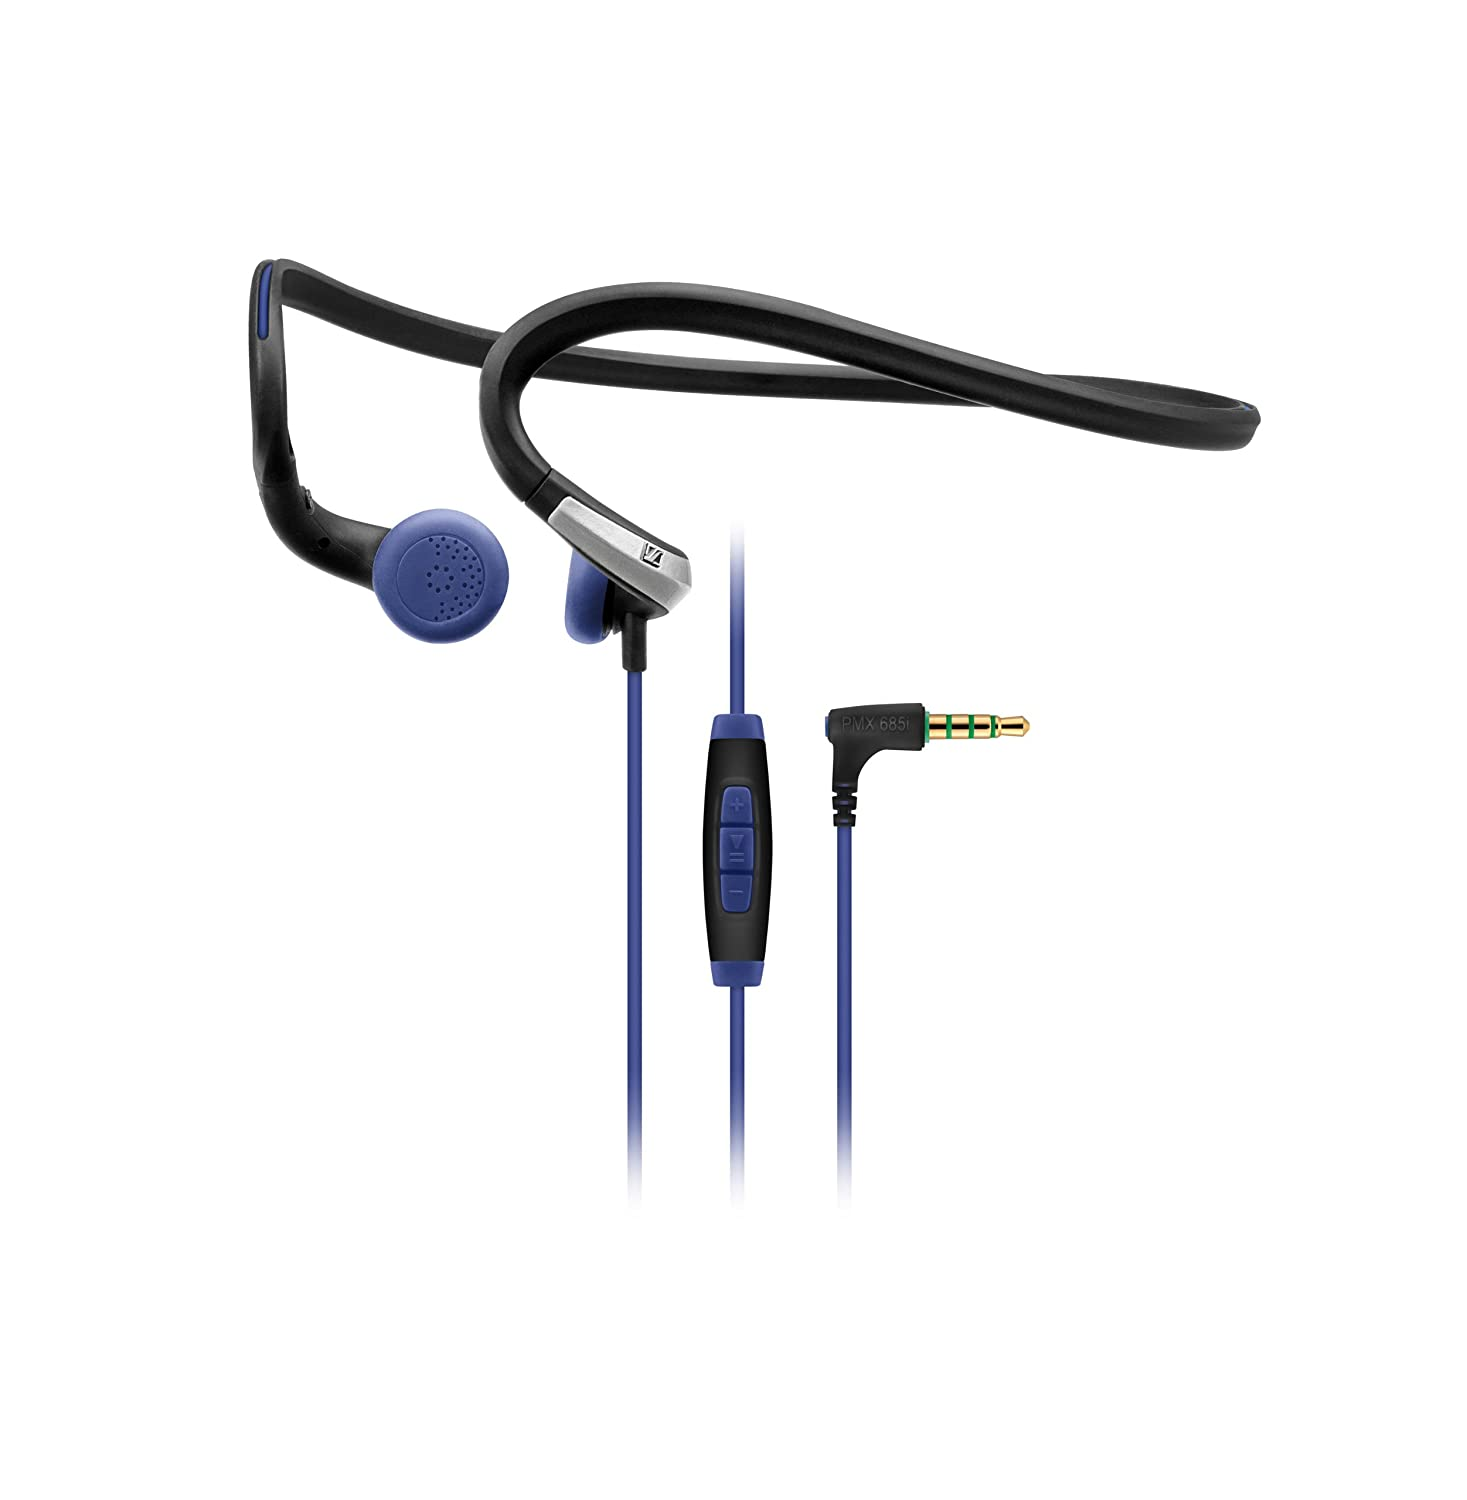 331bfe25dc1 Sennheiser PMX 685i Sports In-Ear Neckband Headphones: Amazon.co.uk: Hi-Fi  & Speakers